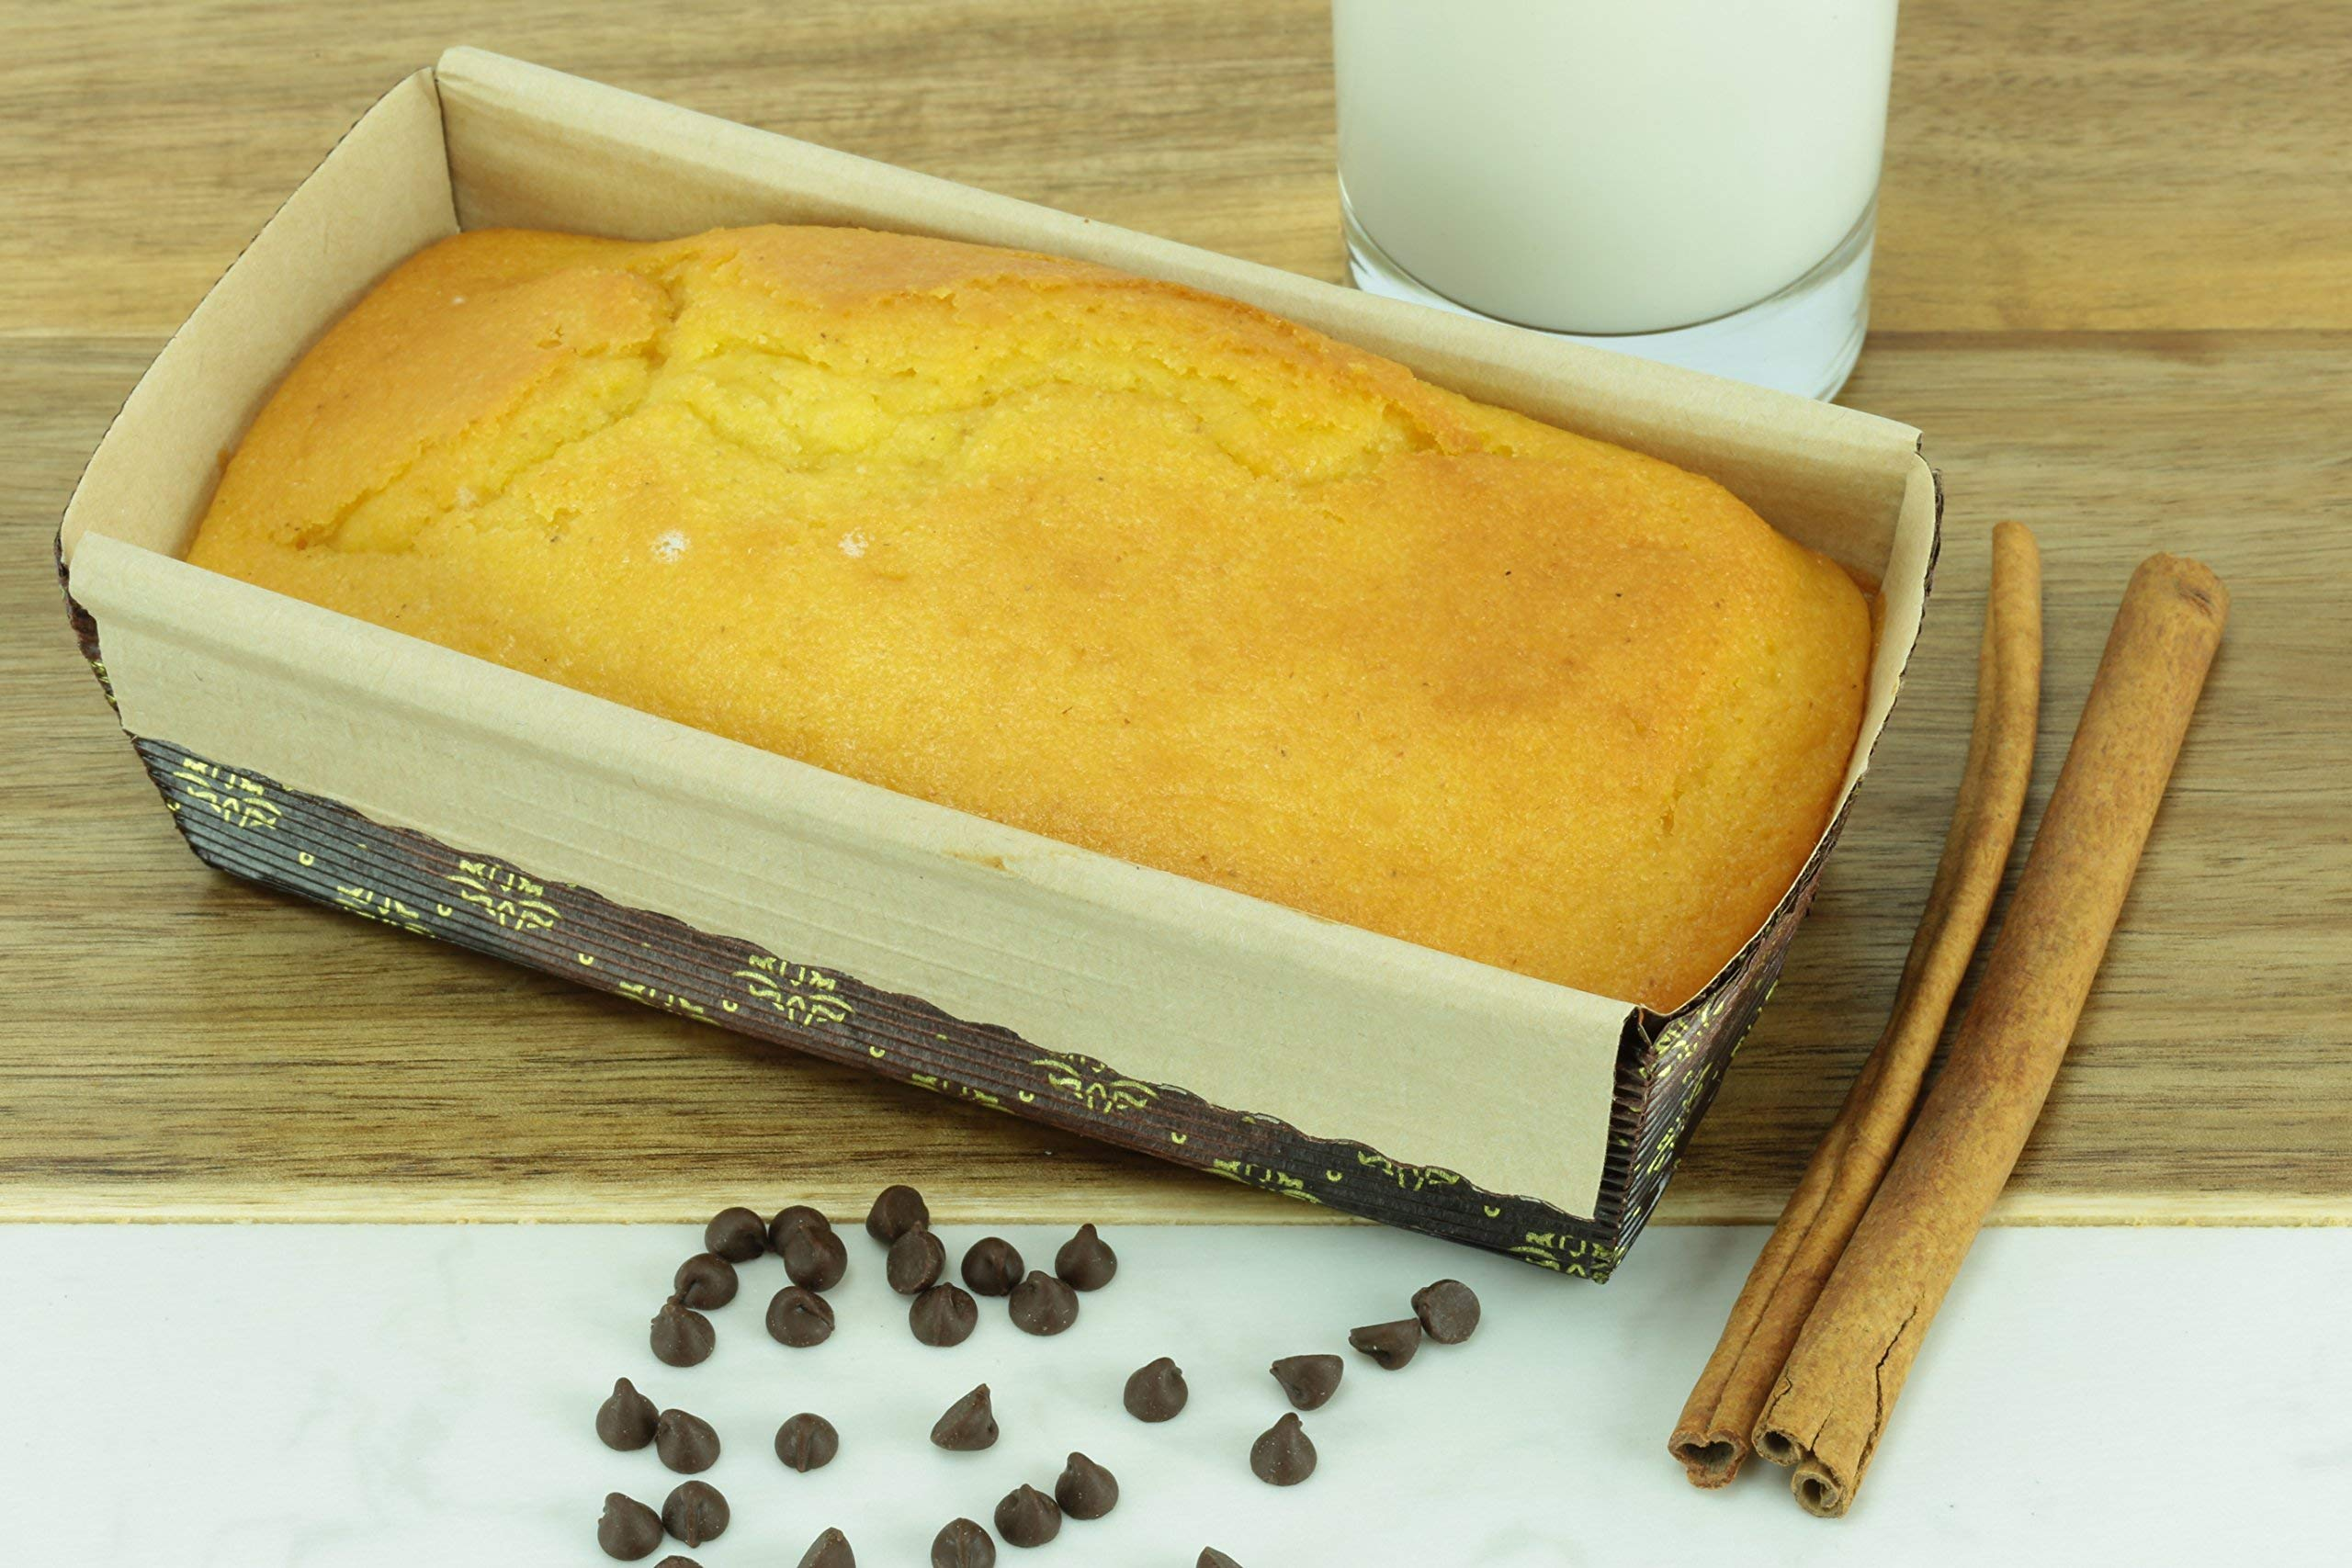 New Premium Paper Baking Loaf Pan, Nonstick, Disposable, All Natural & Eco Friendly, for Chocolate Cake, Banana Bread By Ecobake (100) by Ecobake (Image #6)